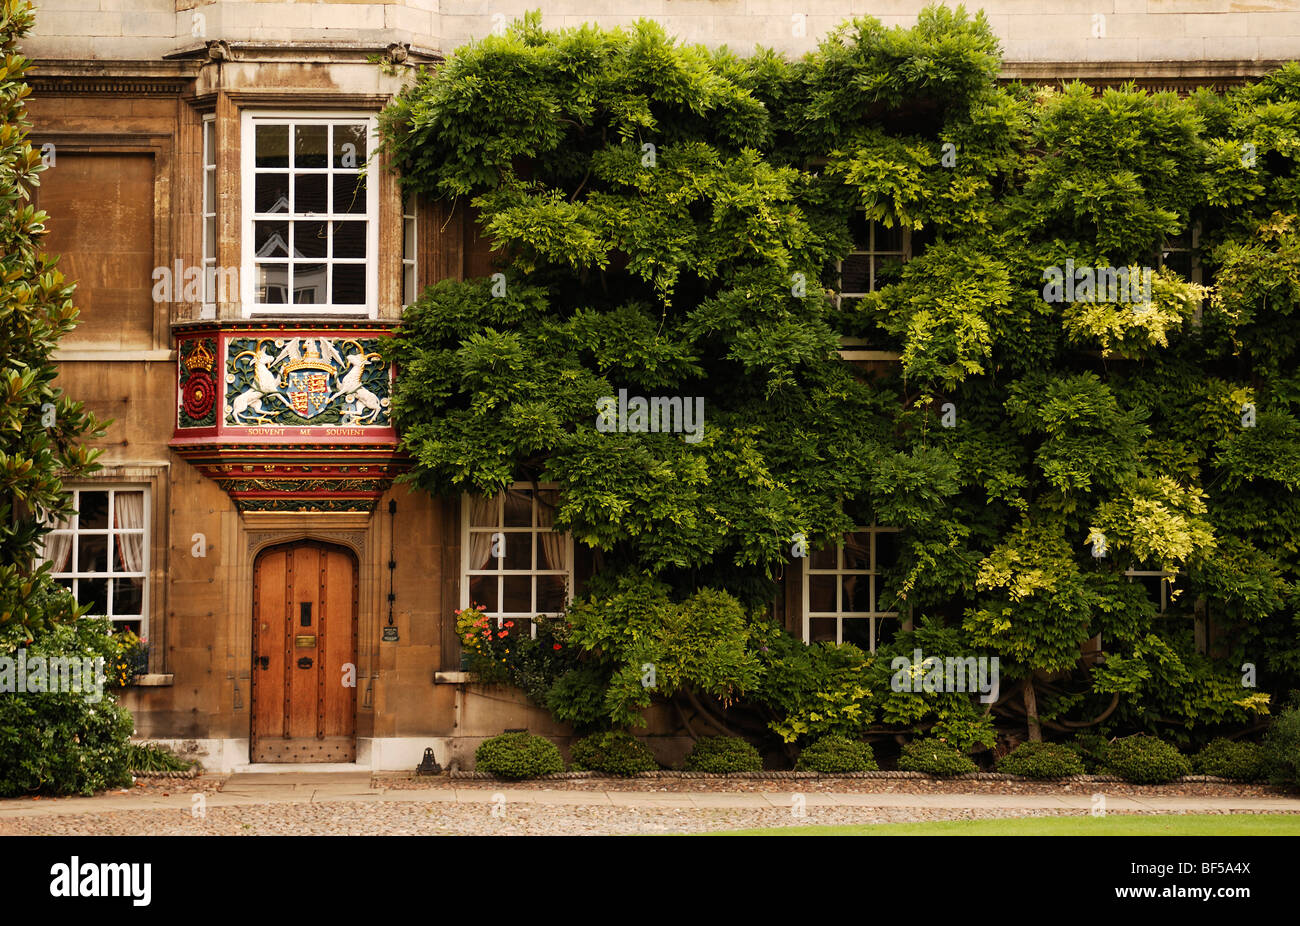 Coat of arms decorating a bay window, entrance to the Master's Lodge, facade covered with Wisteria (Wisteria - Stock Image